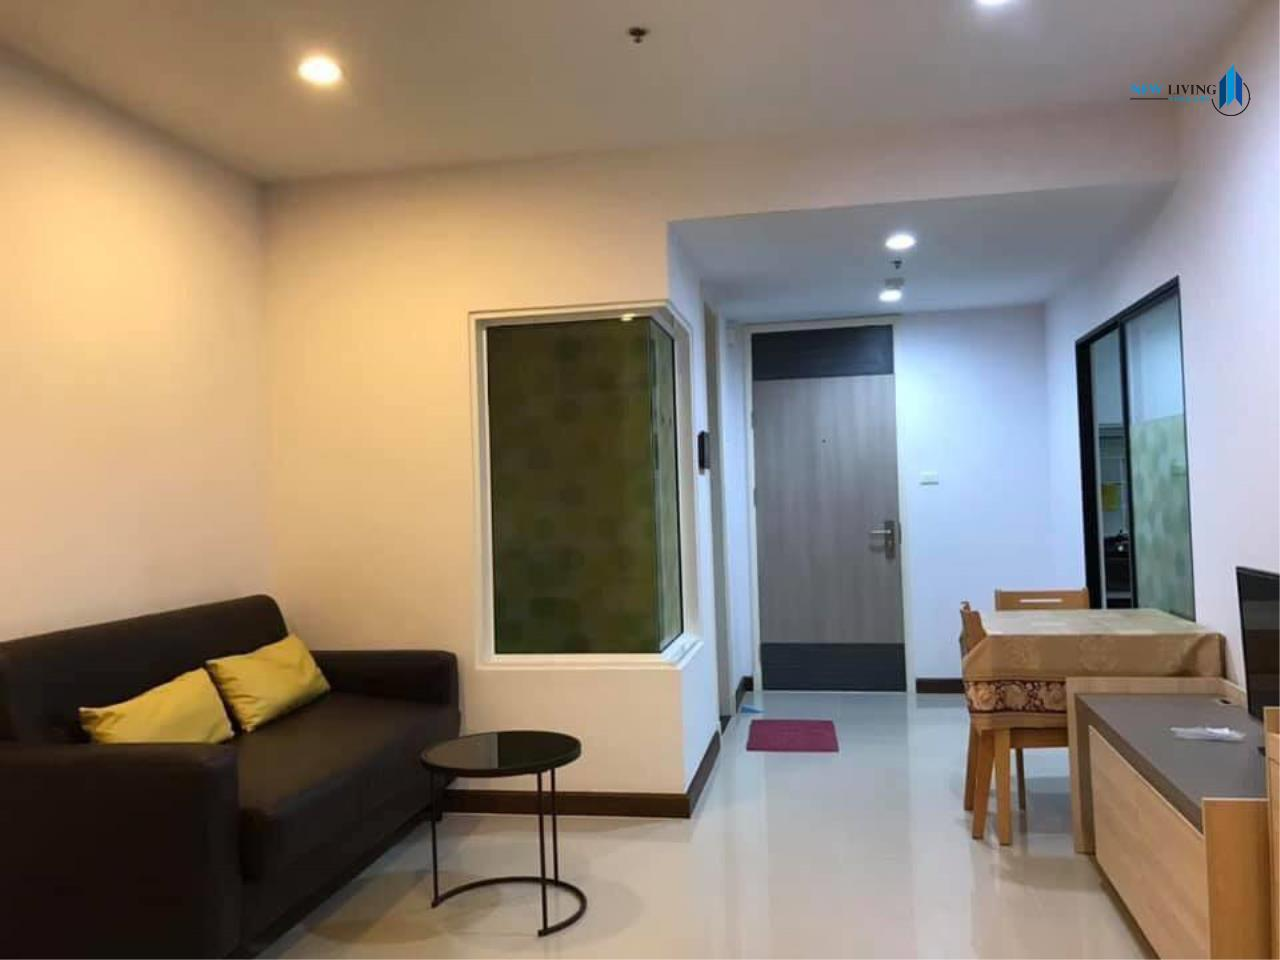 New Living Thailand Agency's **** Urgent rent  !!! Supalai Premier Asoke 1 bedroom 40 sq.m. fully furnished, high floor, open view *** 1